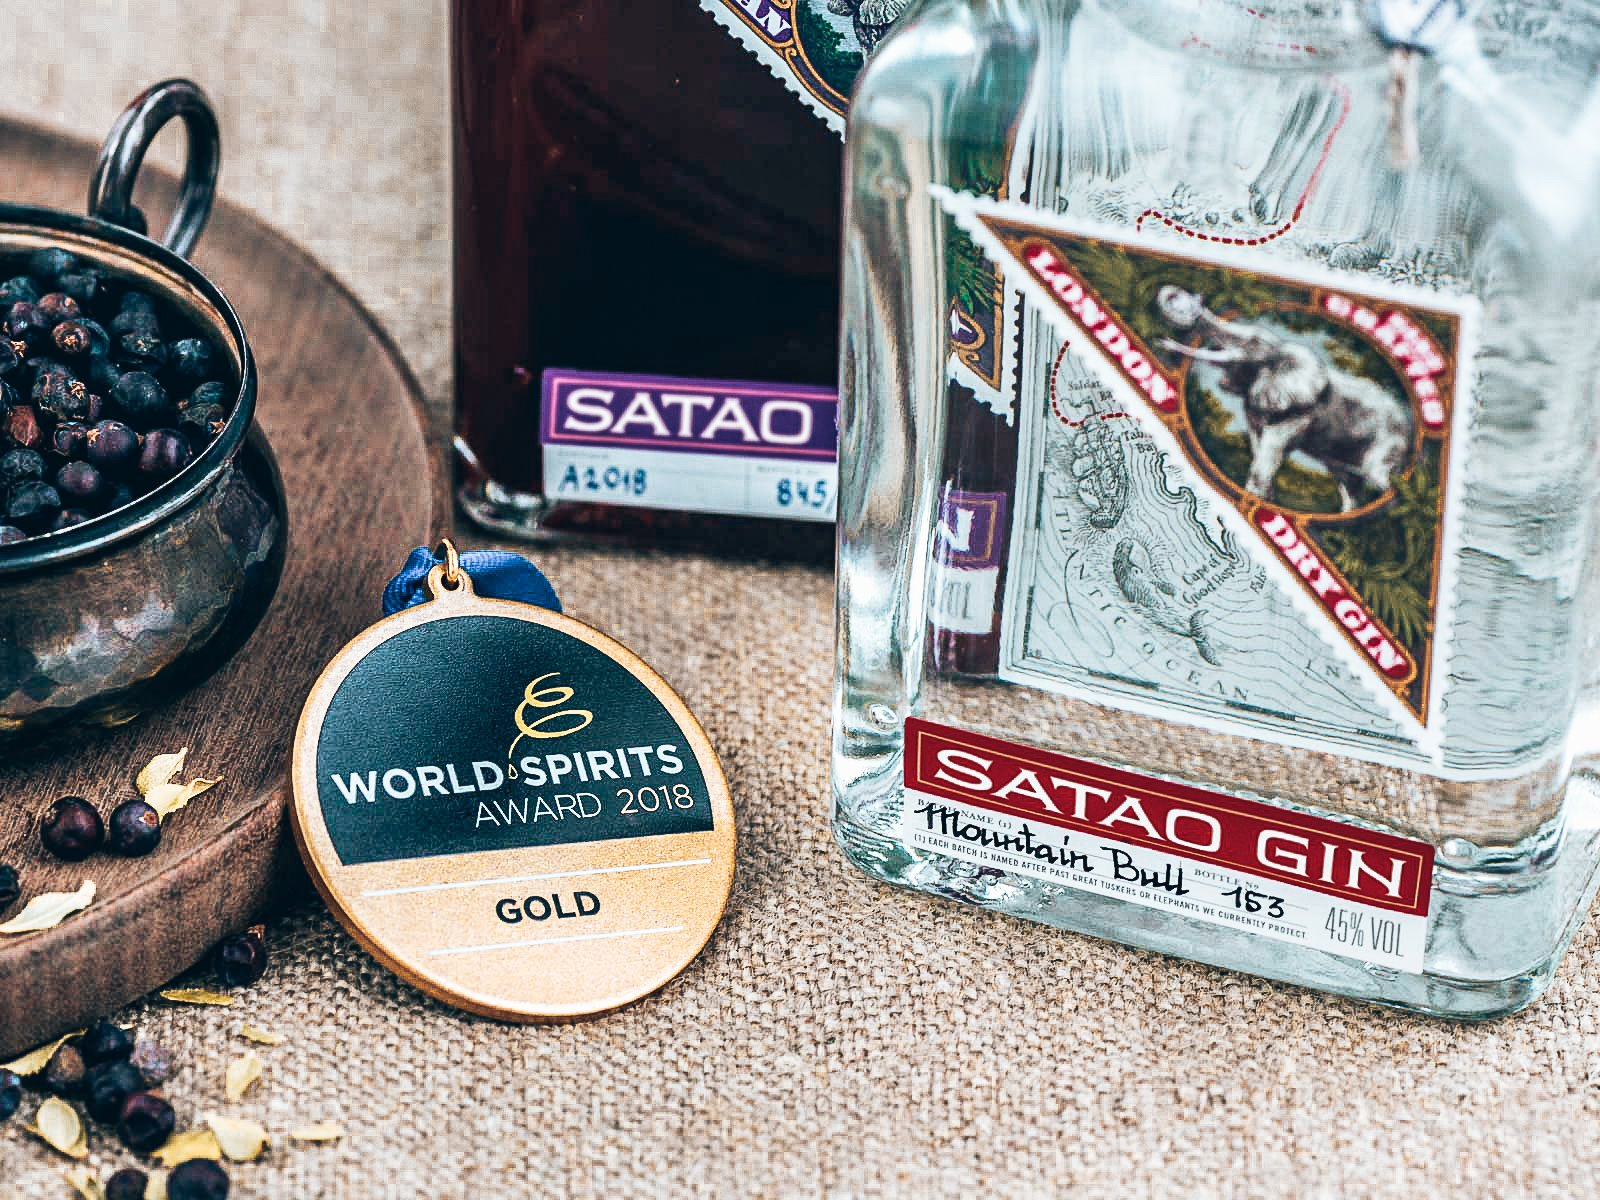 Word Spirit Awards, Satao Gin, Alles over gin.